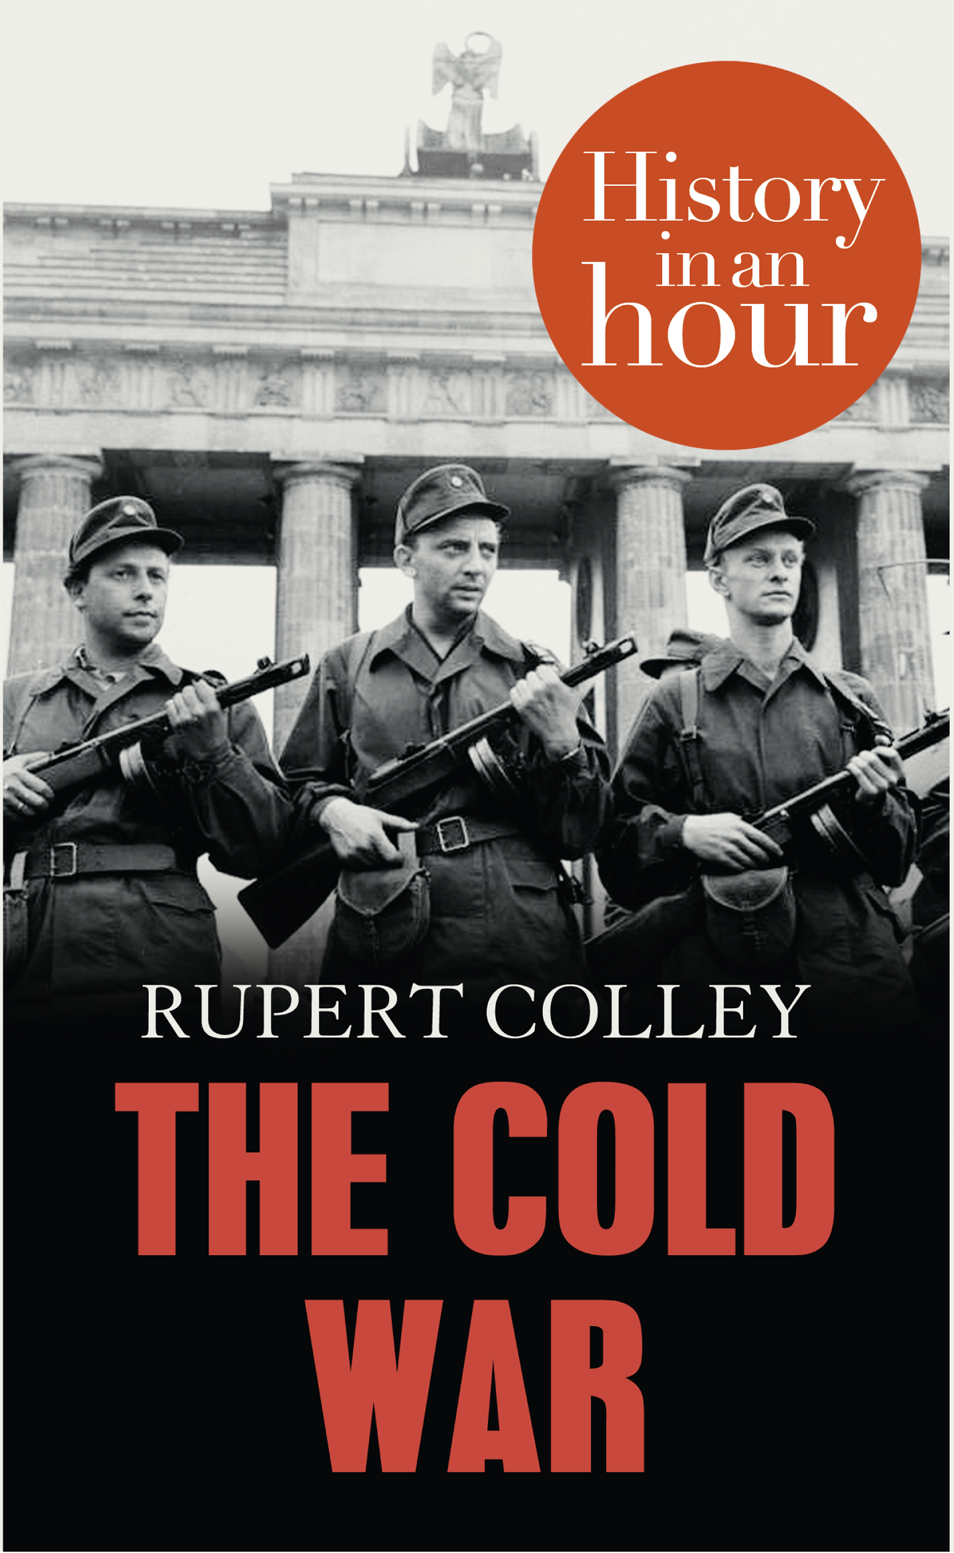 Rupert Colley The Cold War: History in an Hour rupert colley mussolini history in an hour page 9 page 7 page 7